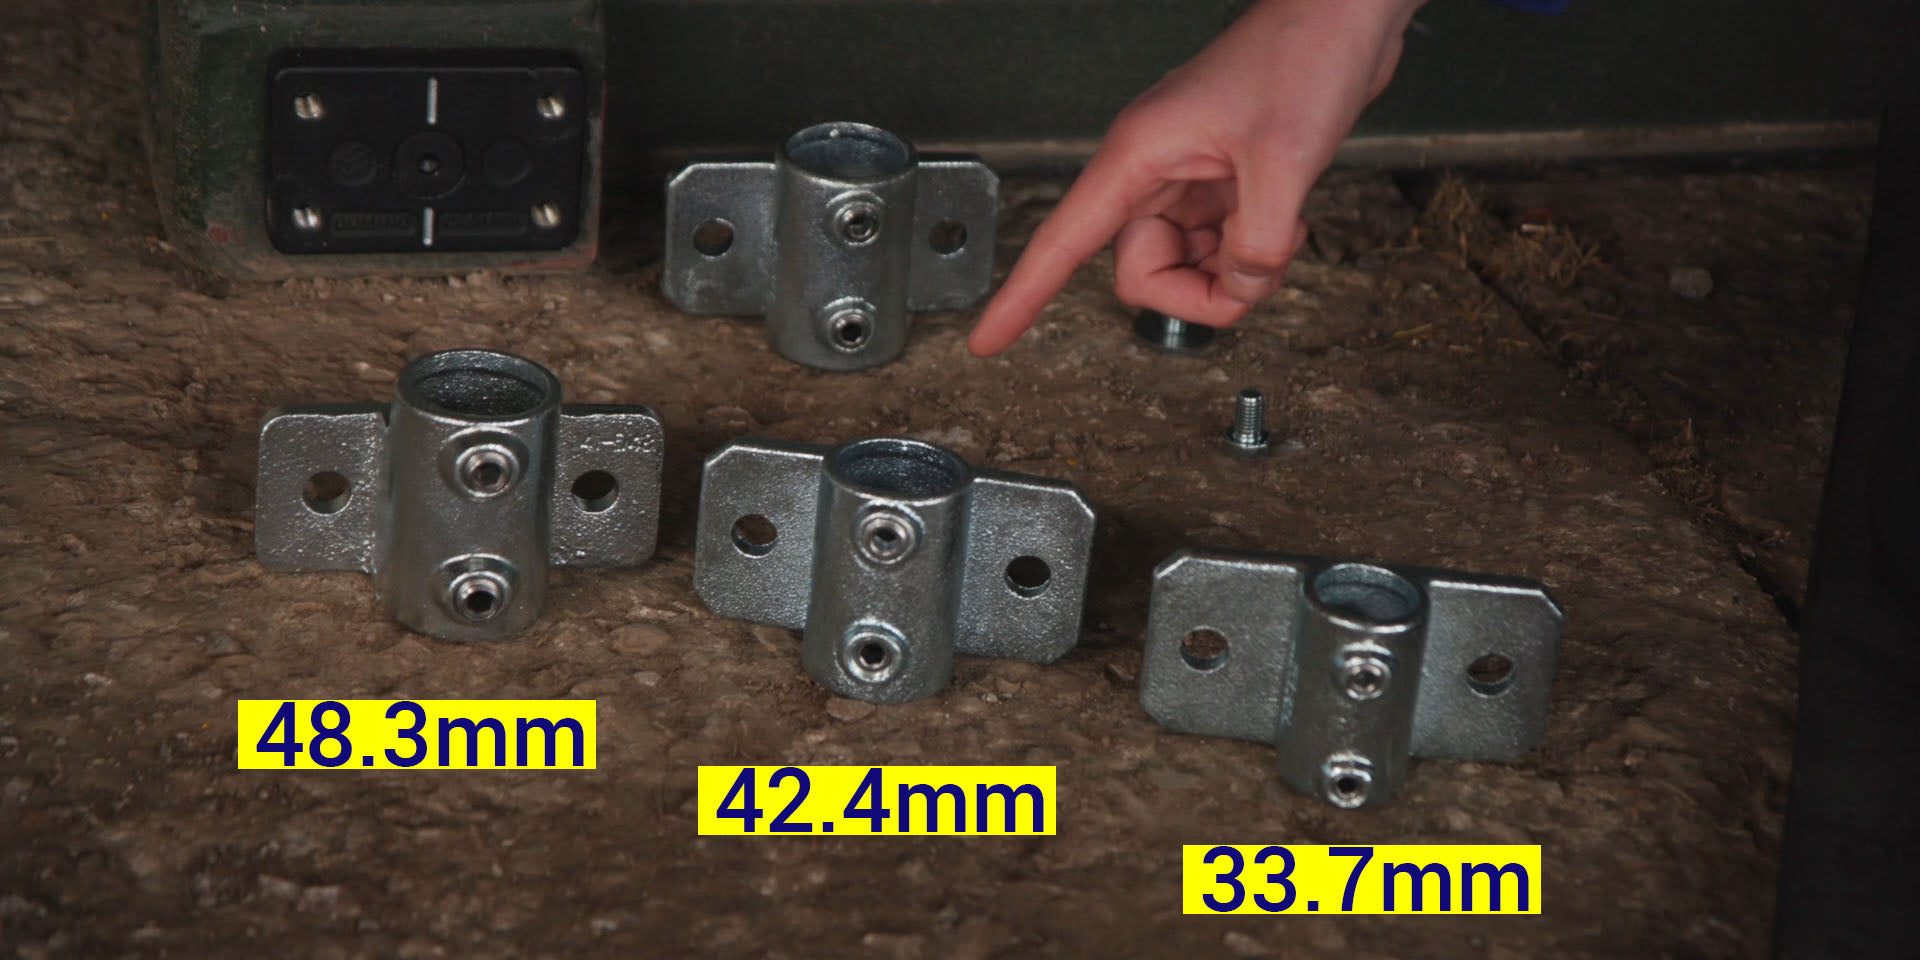 A hand points to the three different sizes of tube clamps